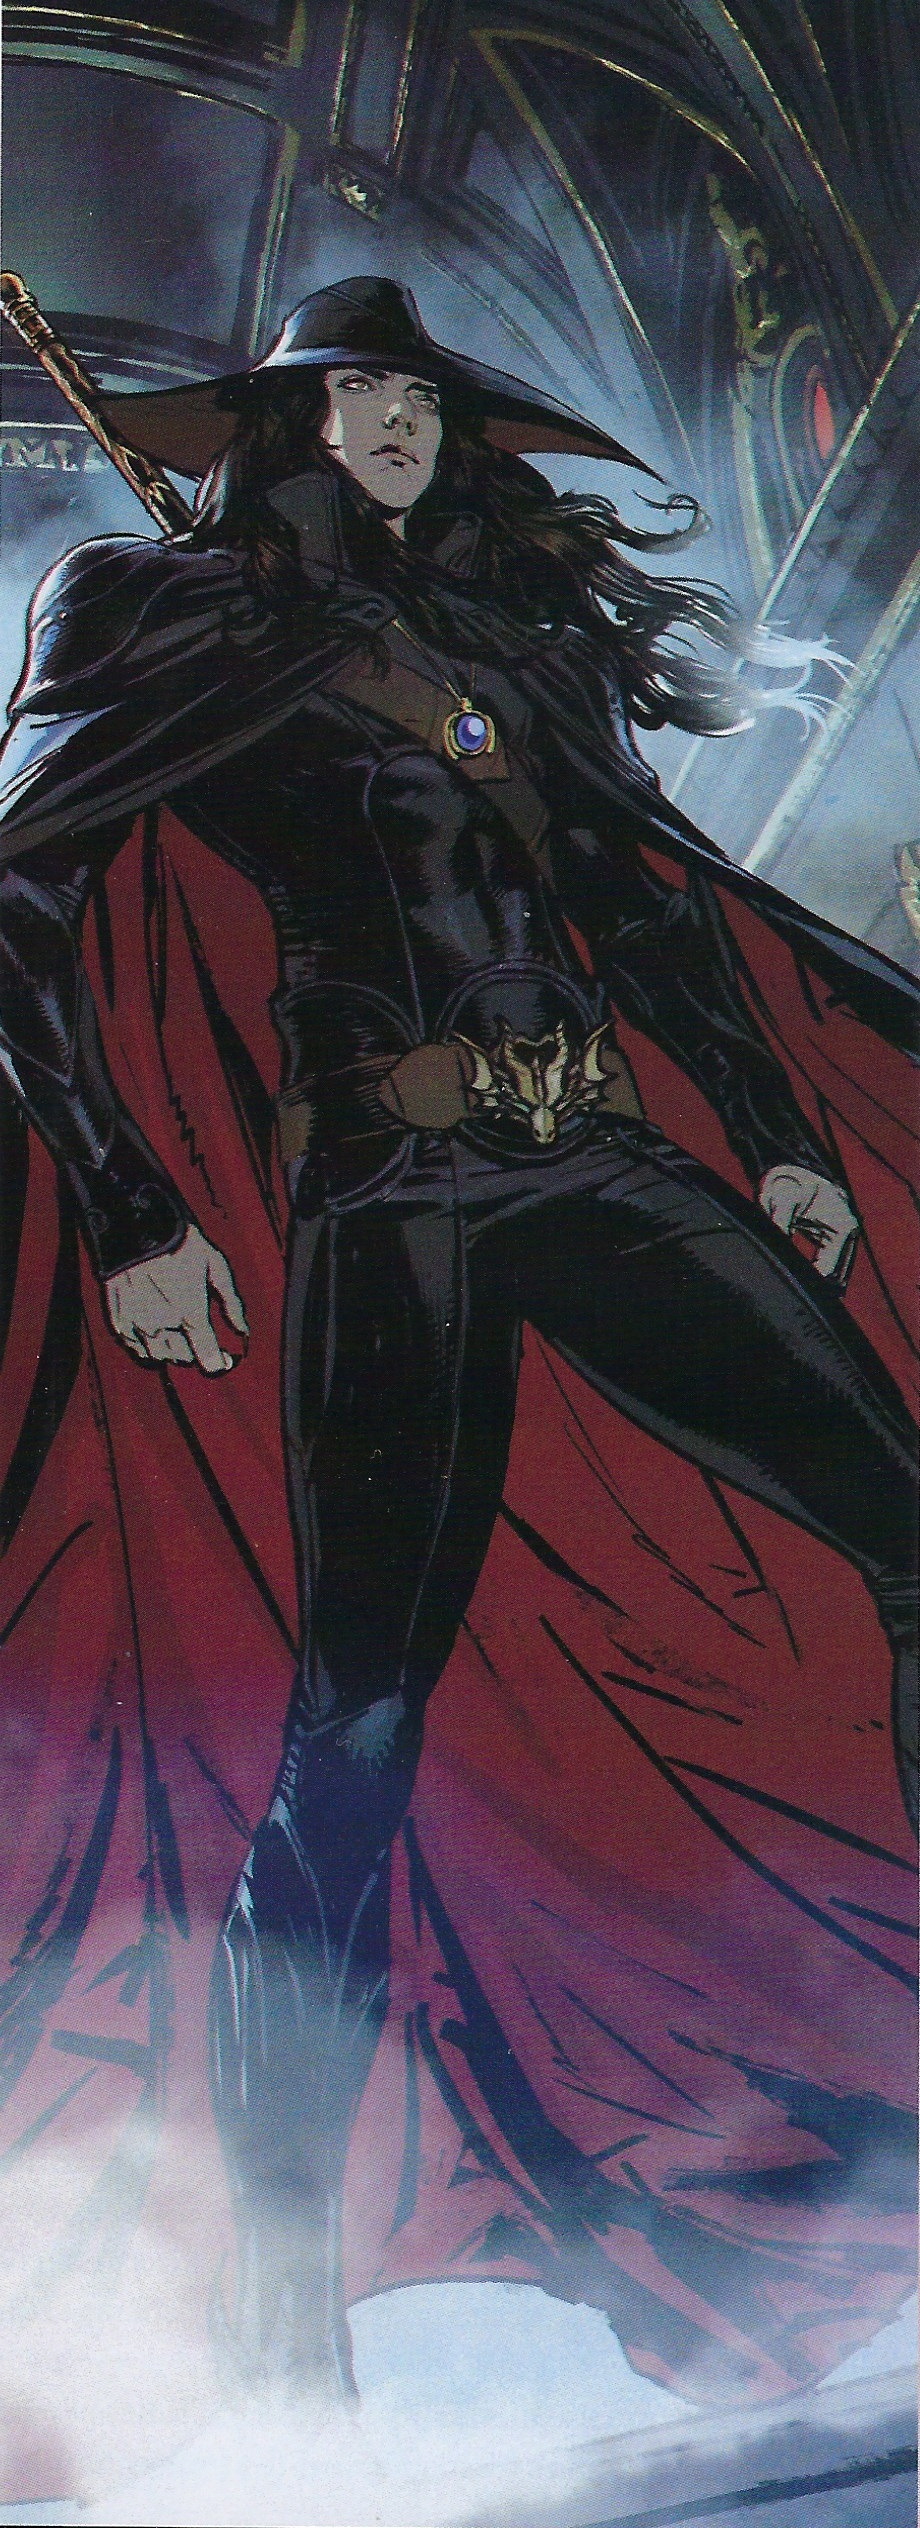 D | Vampire Hunter D Wiki | FANDOM powered by Wikia